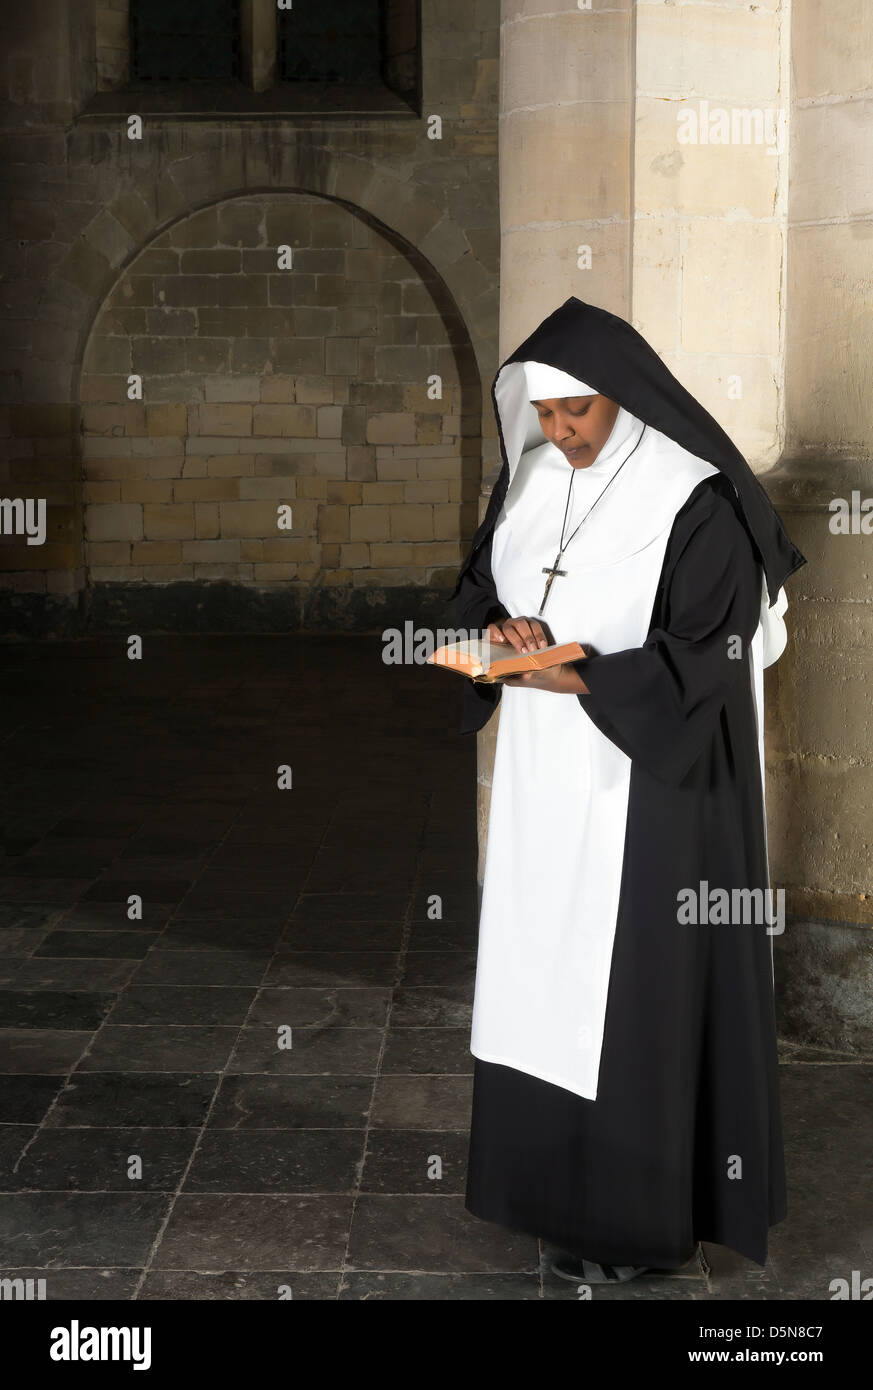 Nun in habit reading the bible in a medieval church - Stock Image